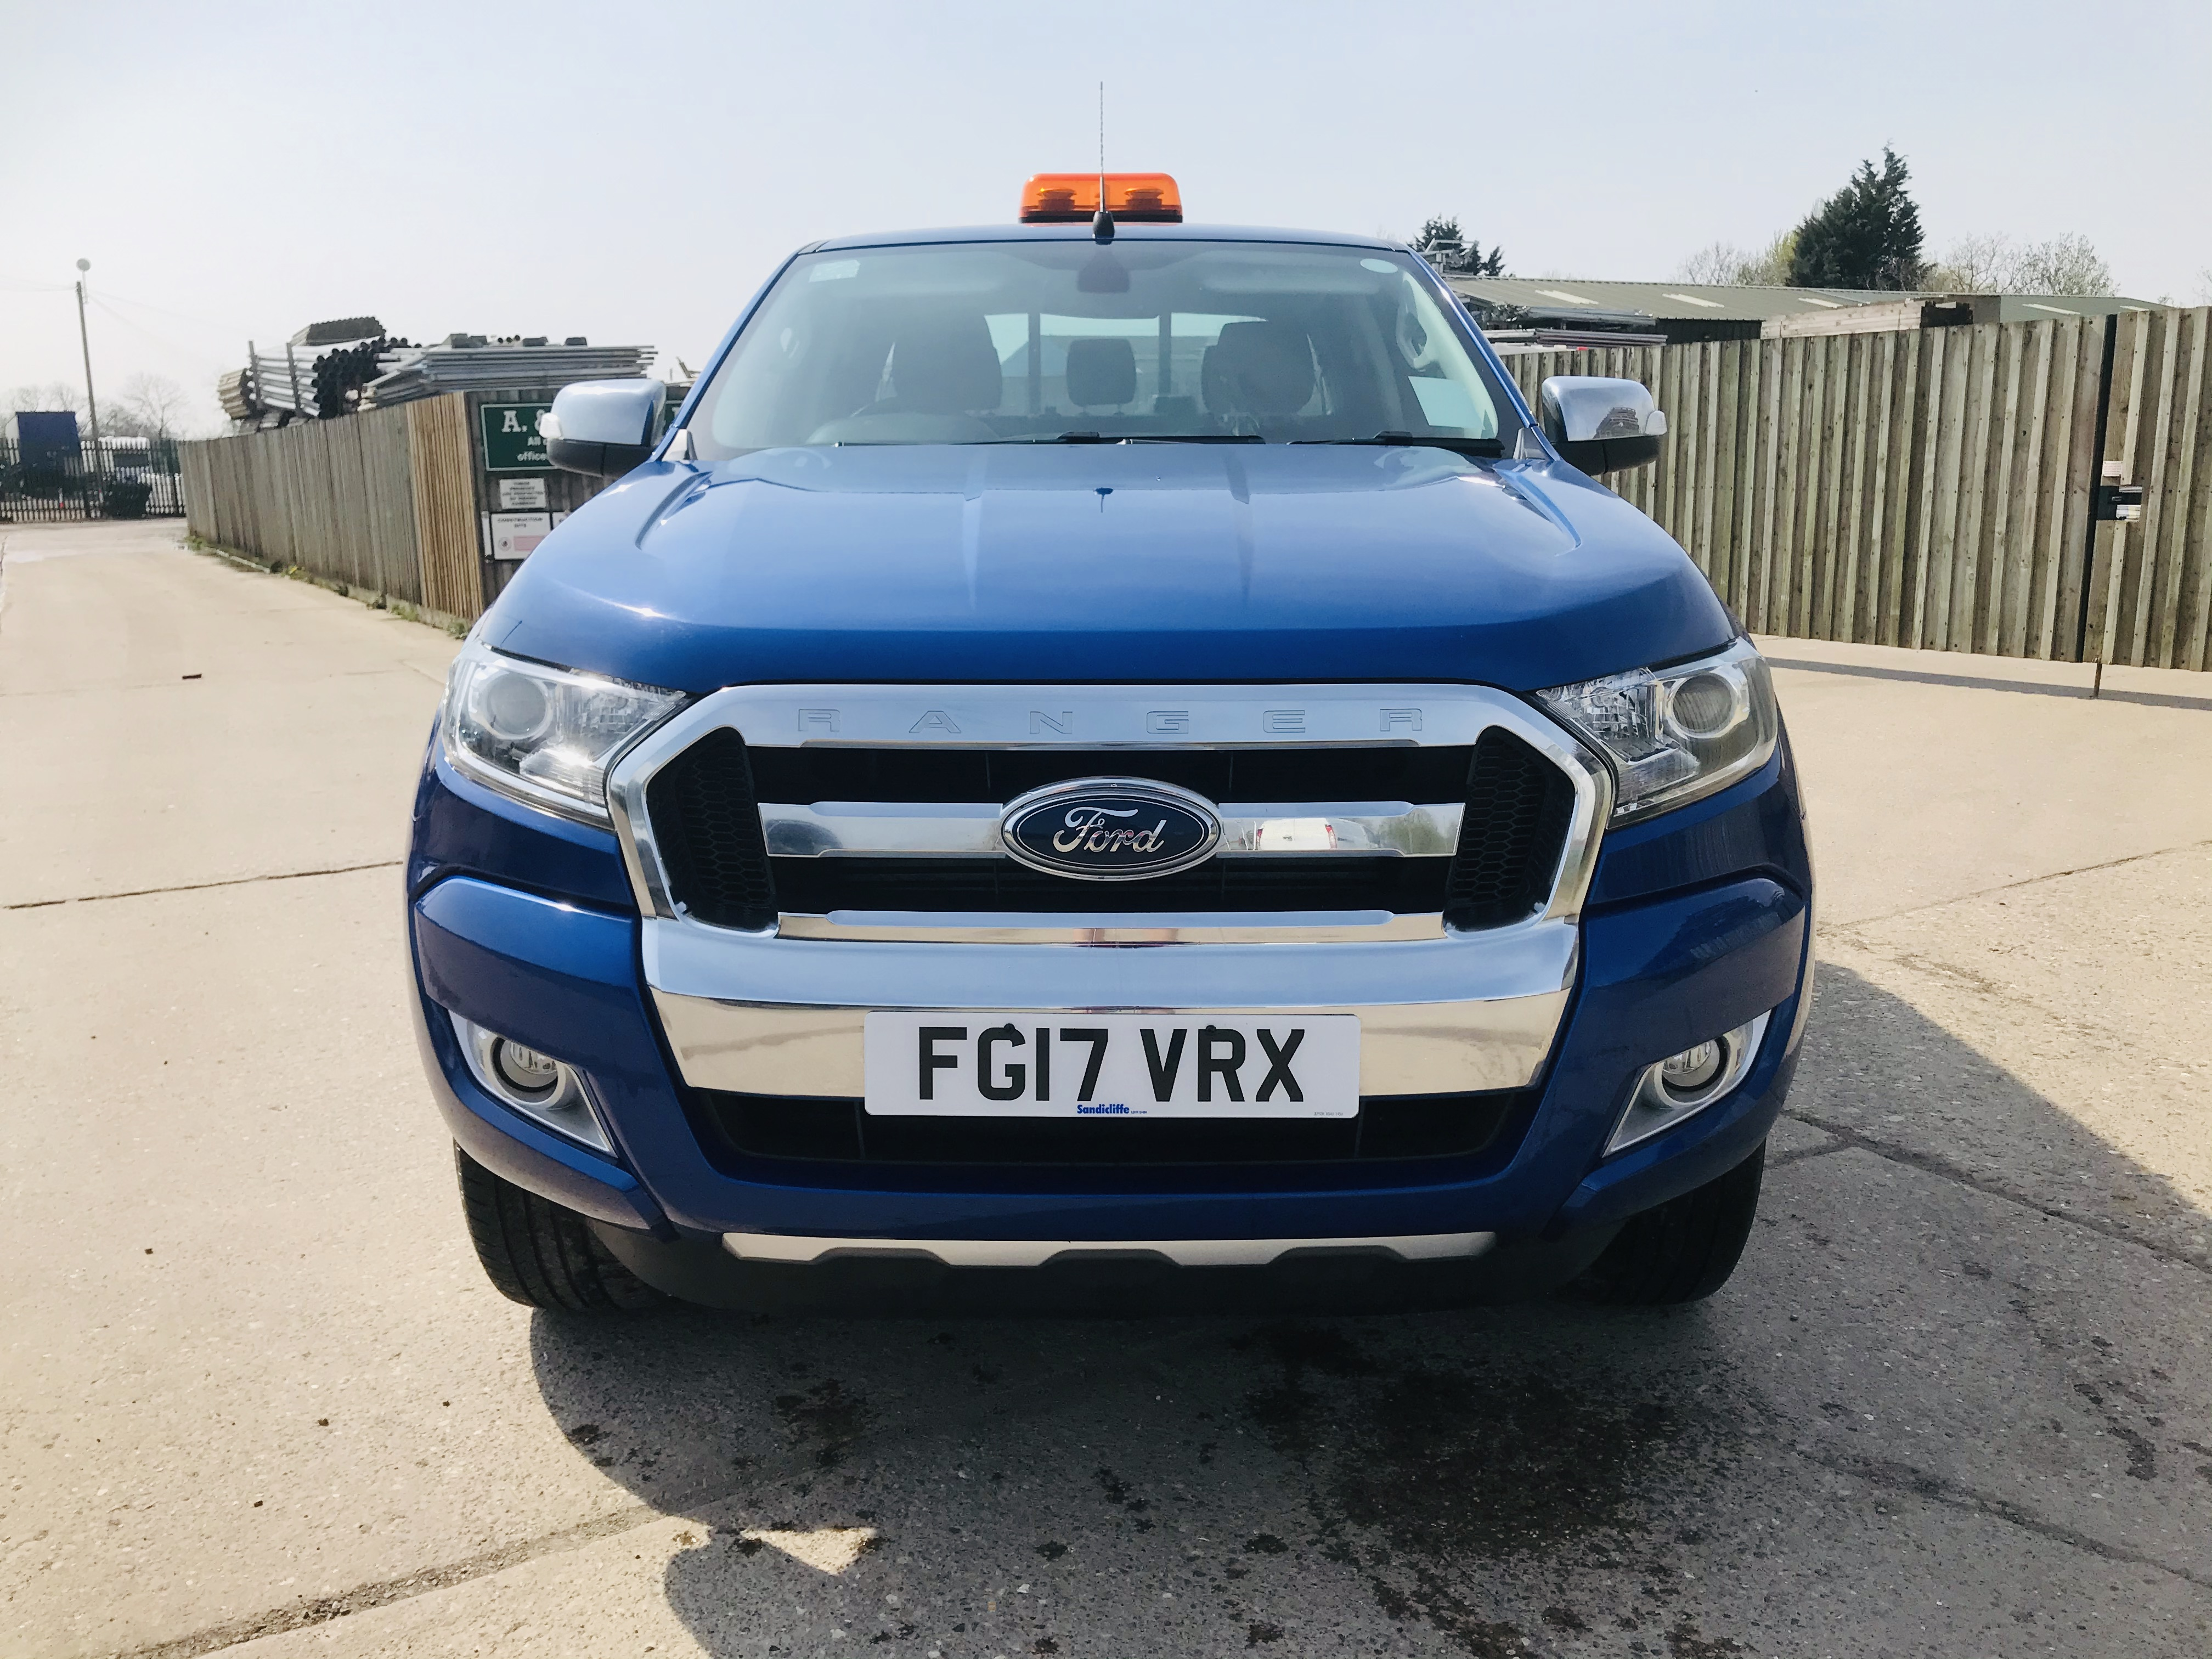 """ON SALE FORD RANGER 2.2TDCI """"LIMITED"""" D/C PICK UP (17 REG) 1 OWNER FSH - FULL LEATHER - CLIMATE & AC - Image 4 of 38"""